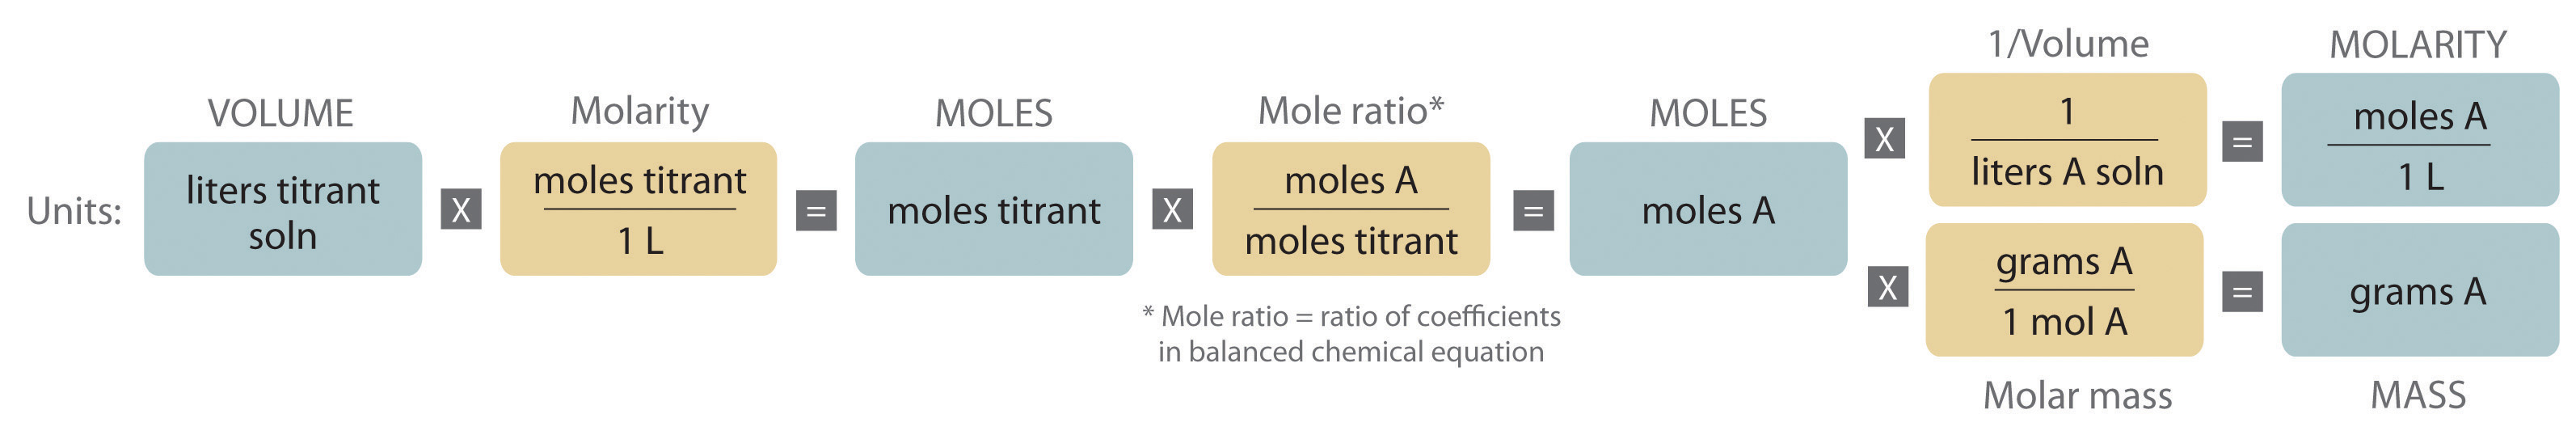 how to change w v to molarity